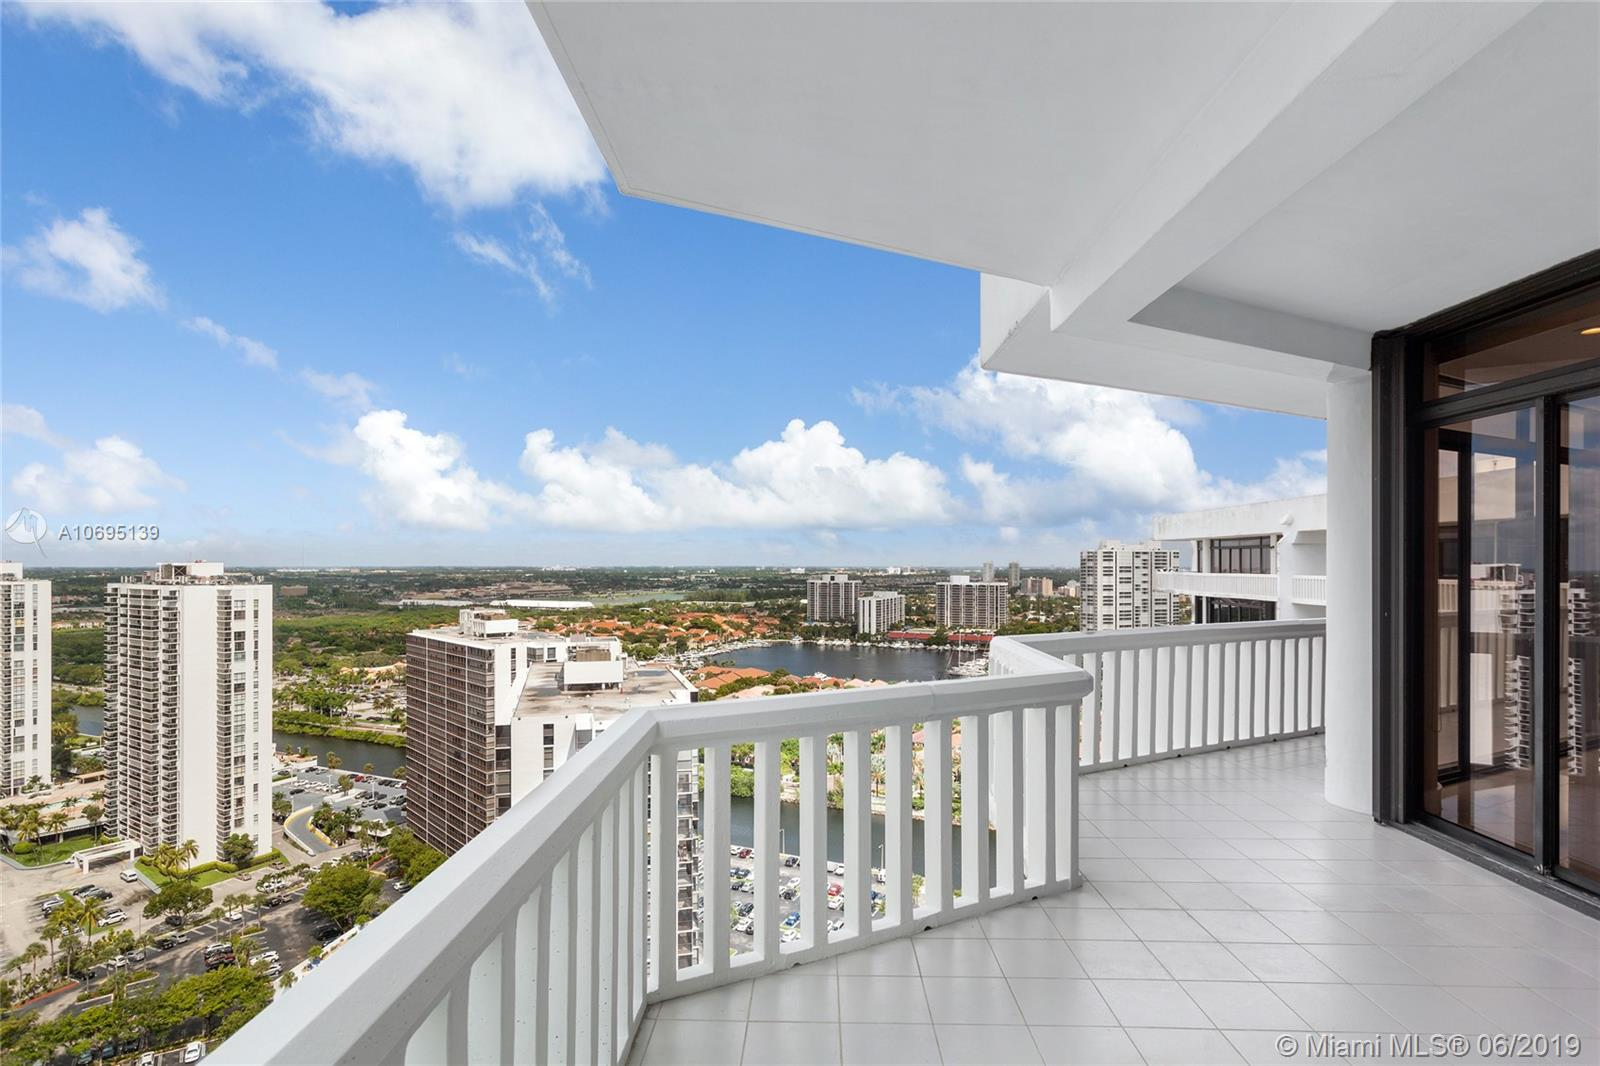 20281 E COUNTRY CLUB DRIVE #PH7 For Sale A10695139, FL